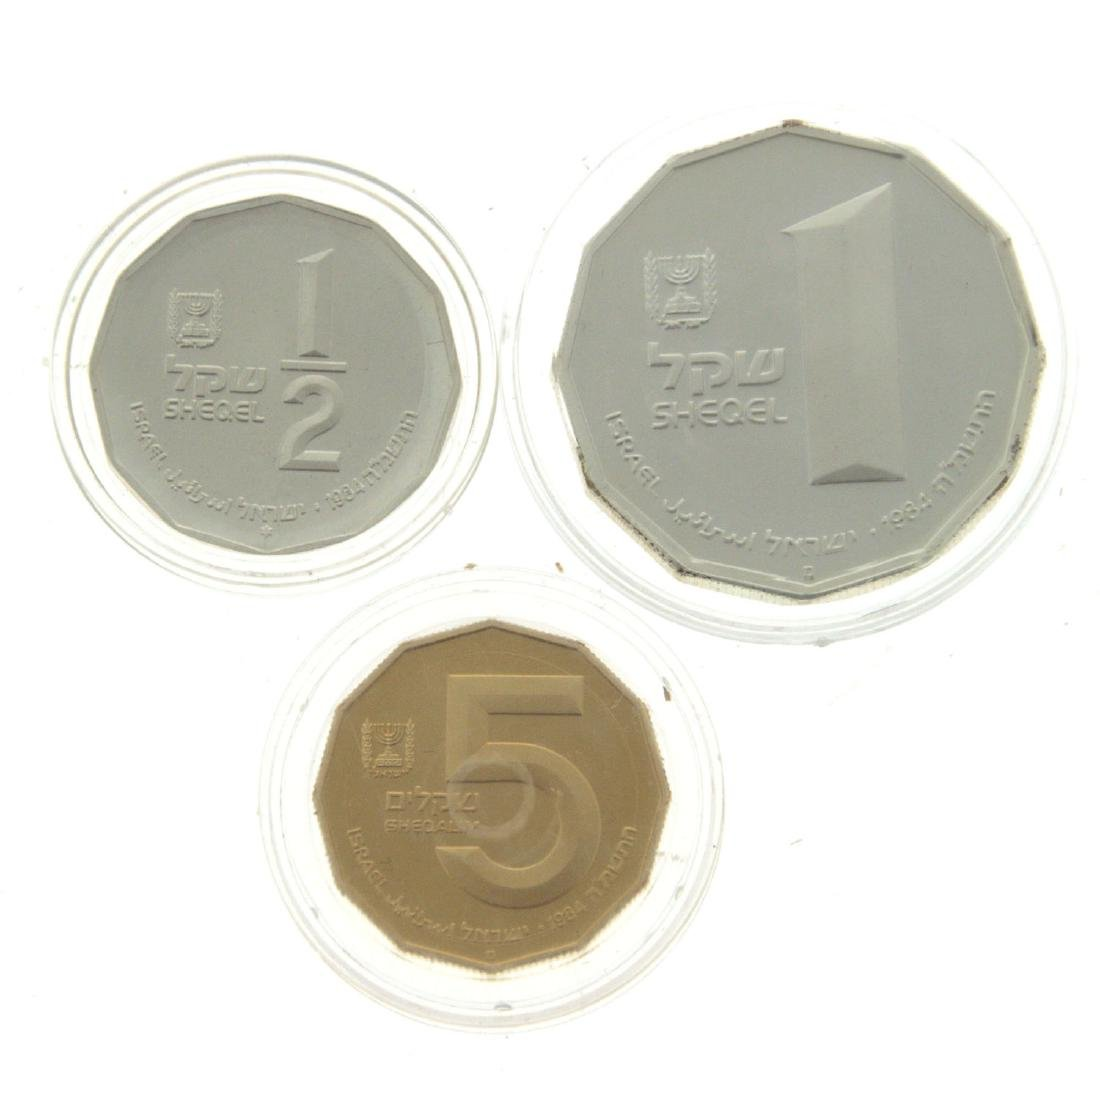 Valley of Kidron Gold and Silver Coin Set.